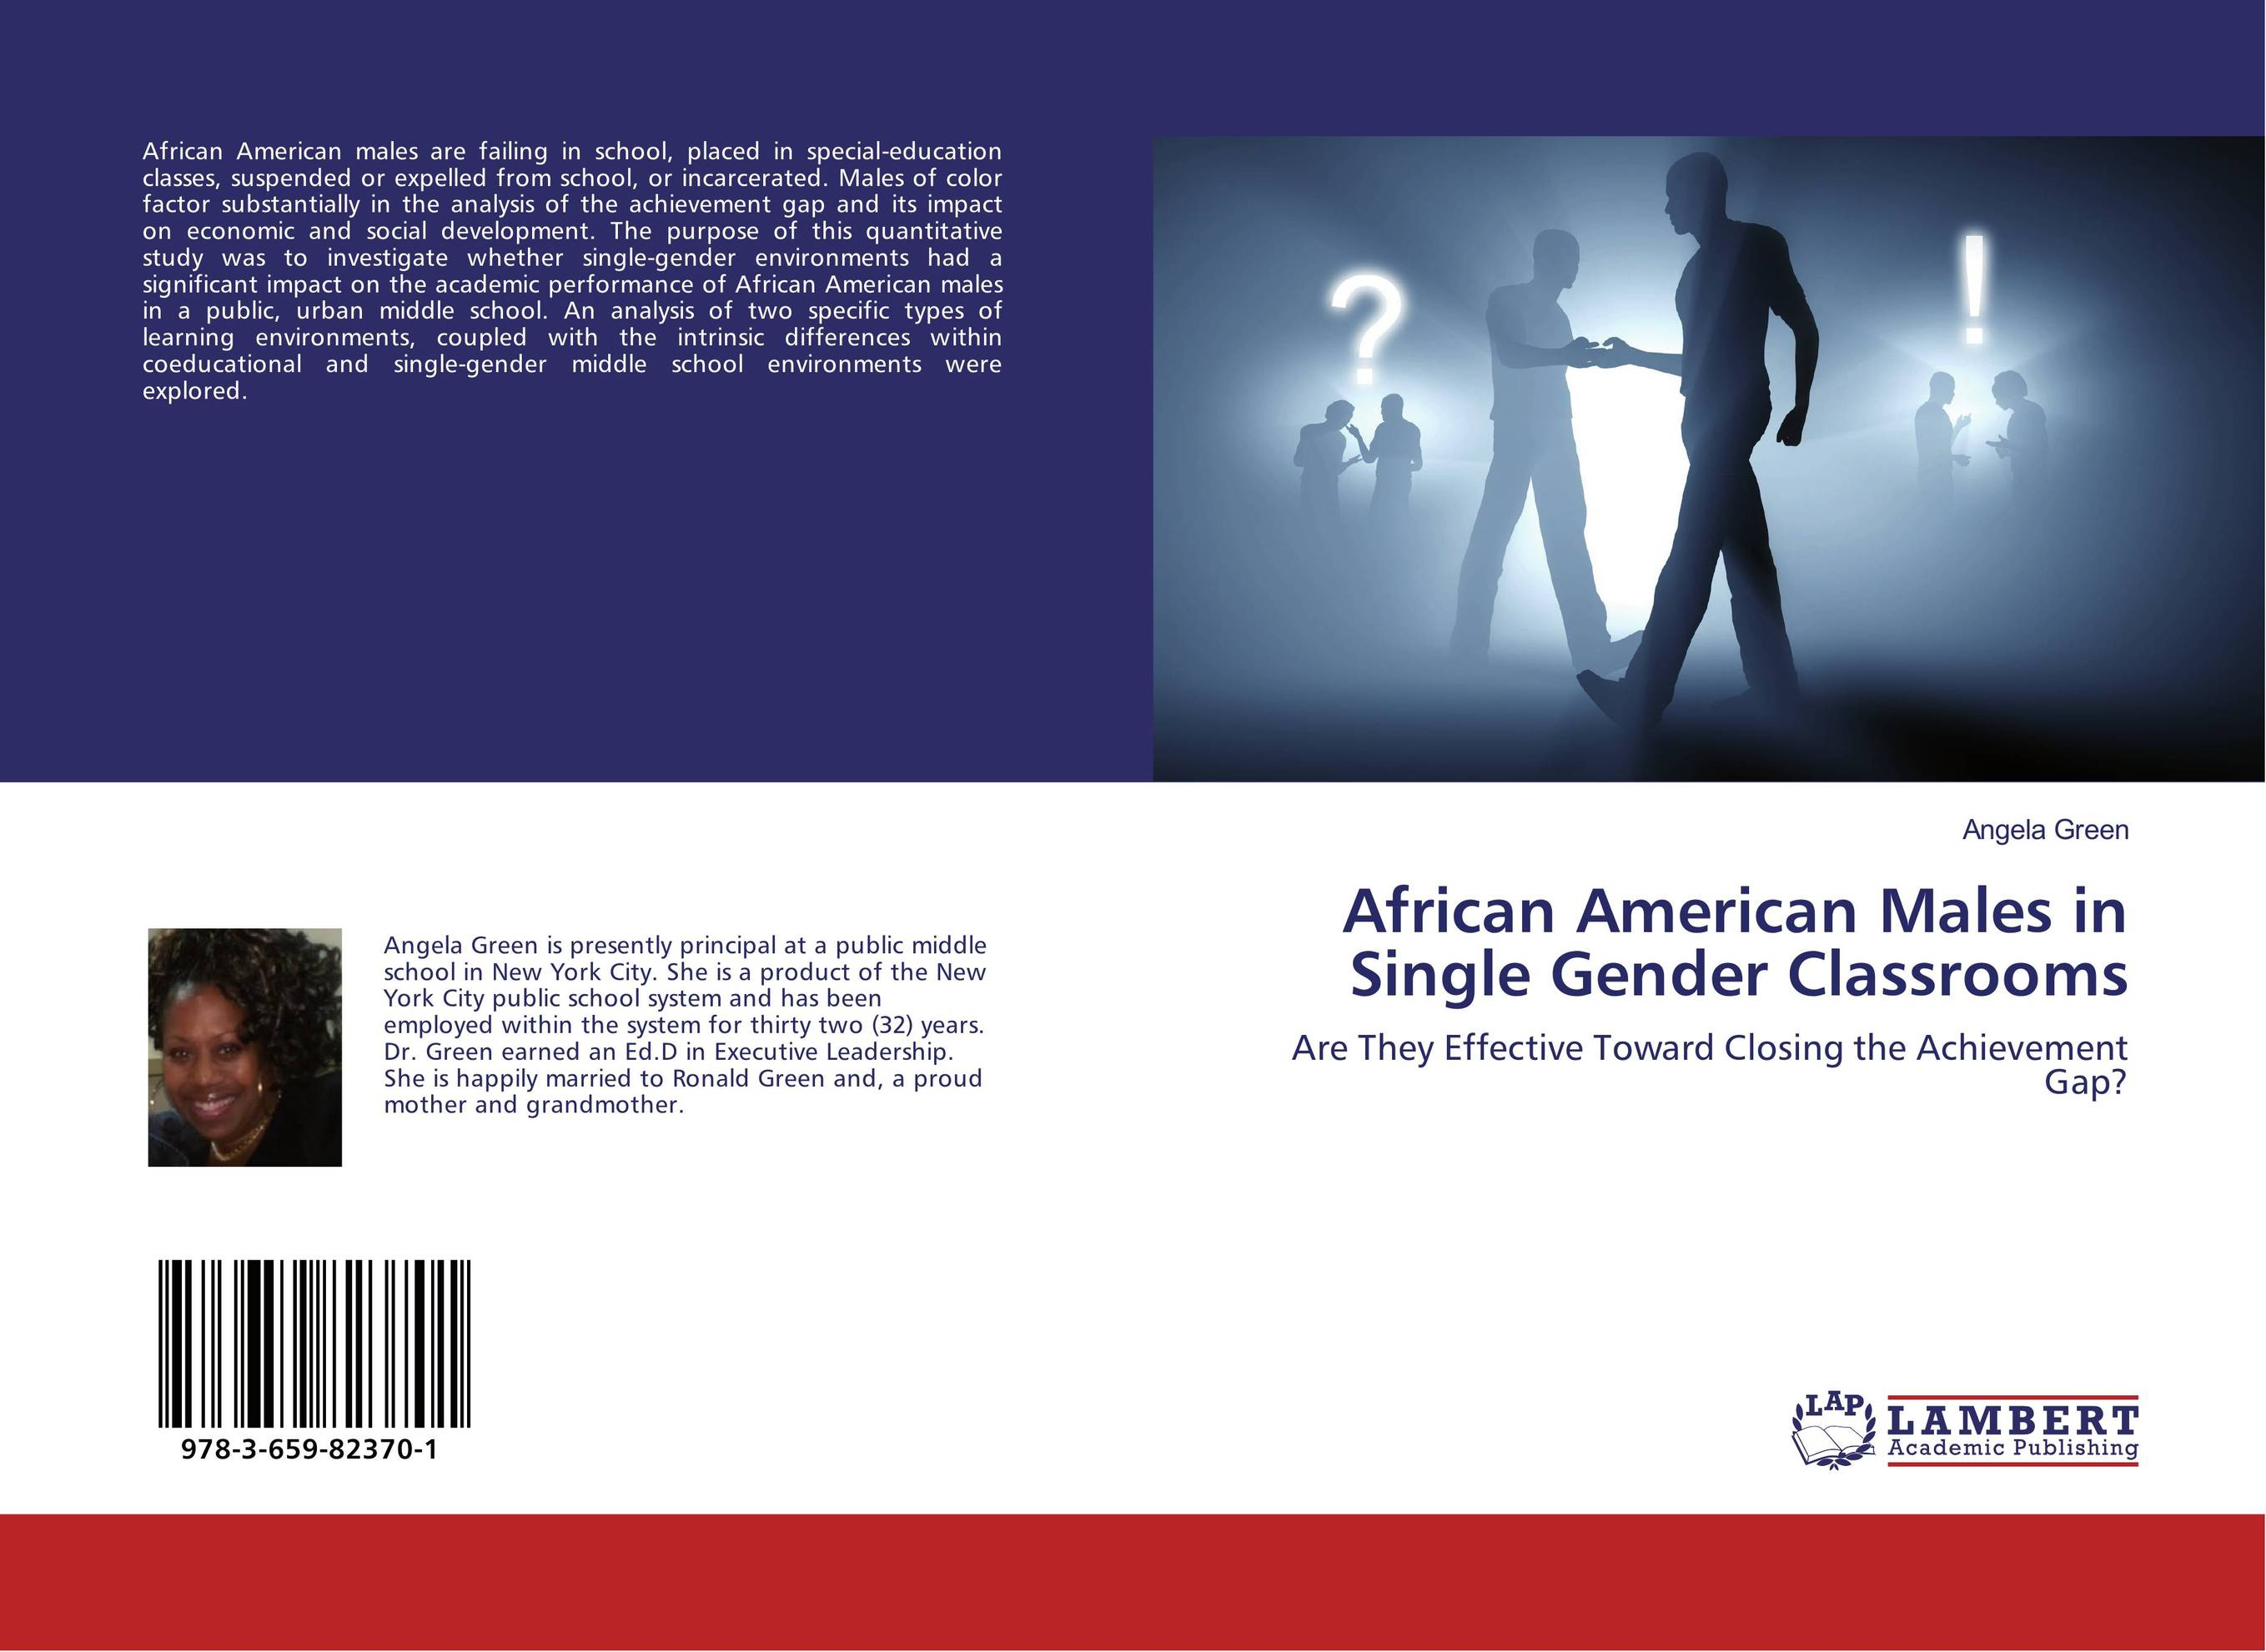 African American Males in Single Gender Classrooms